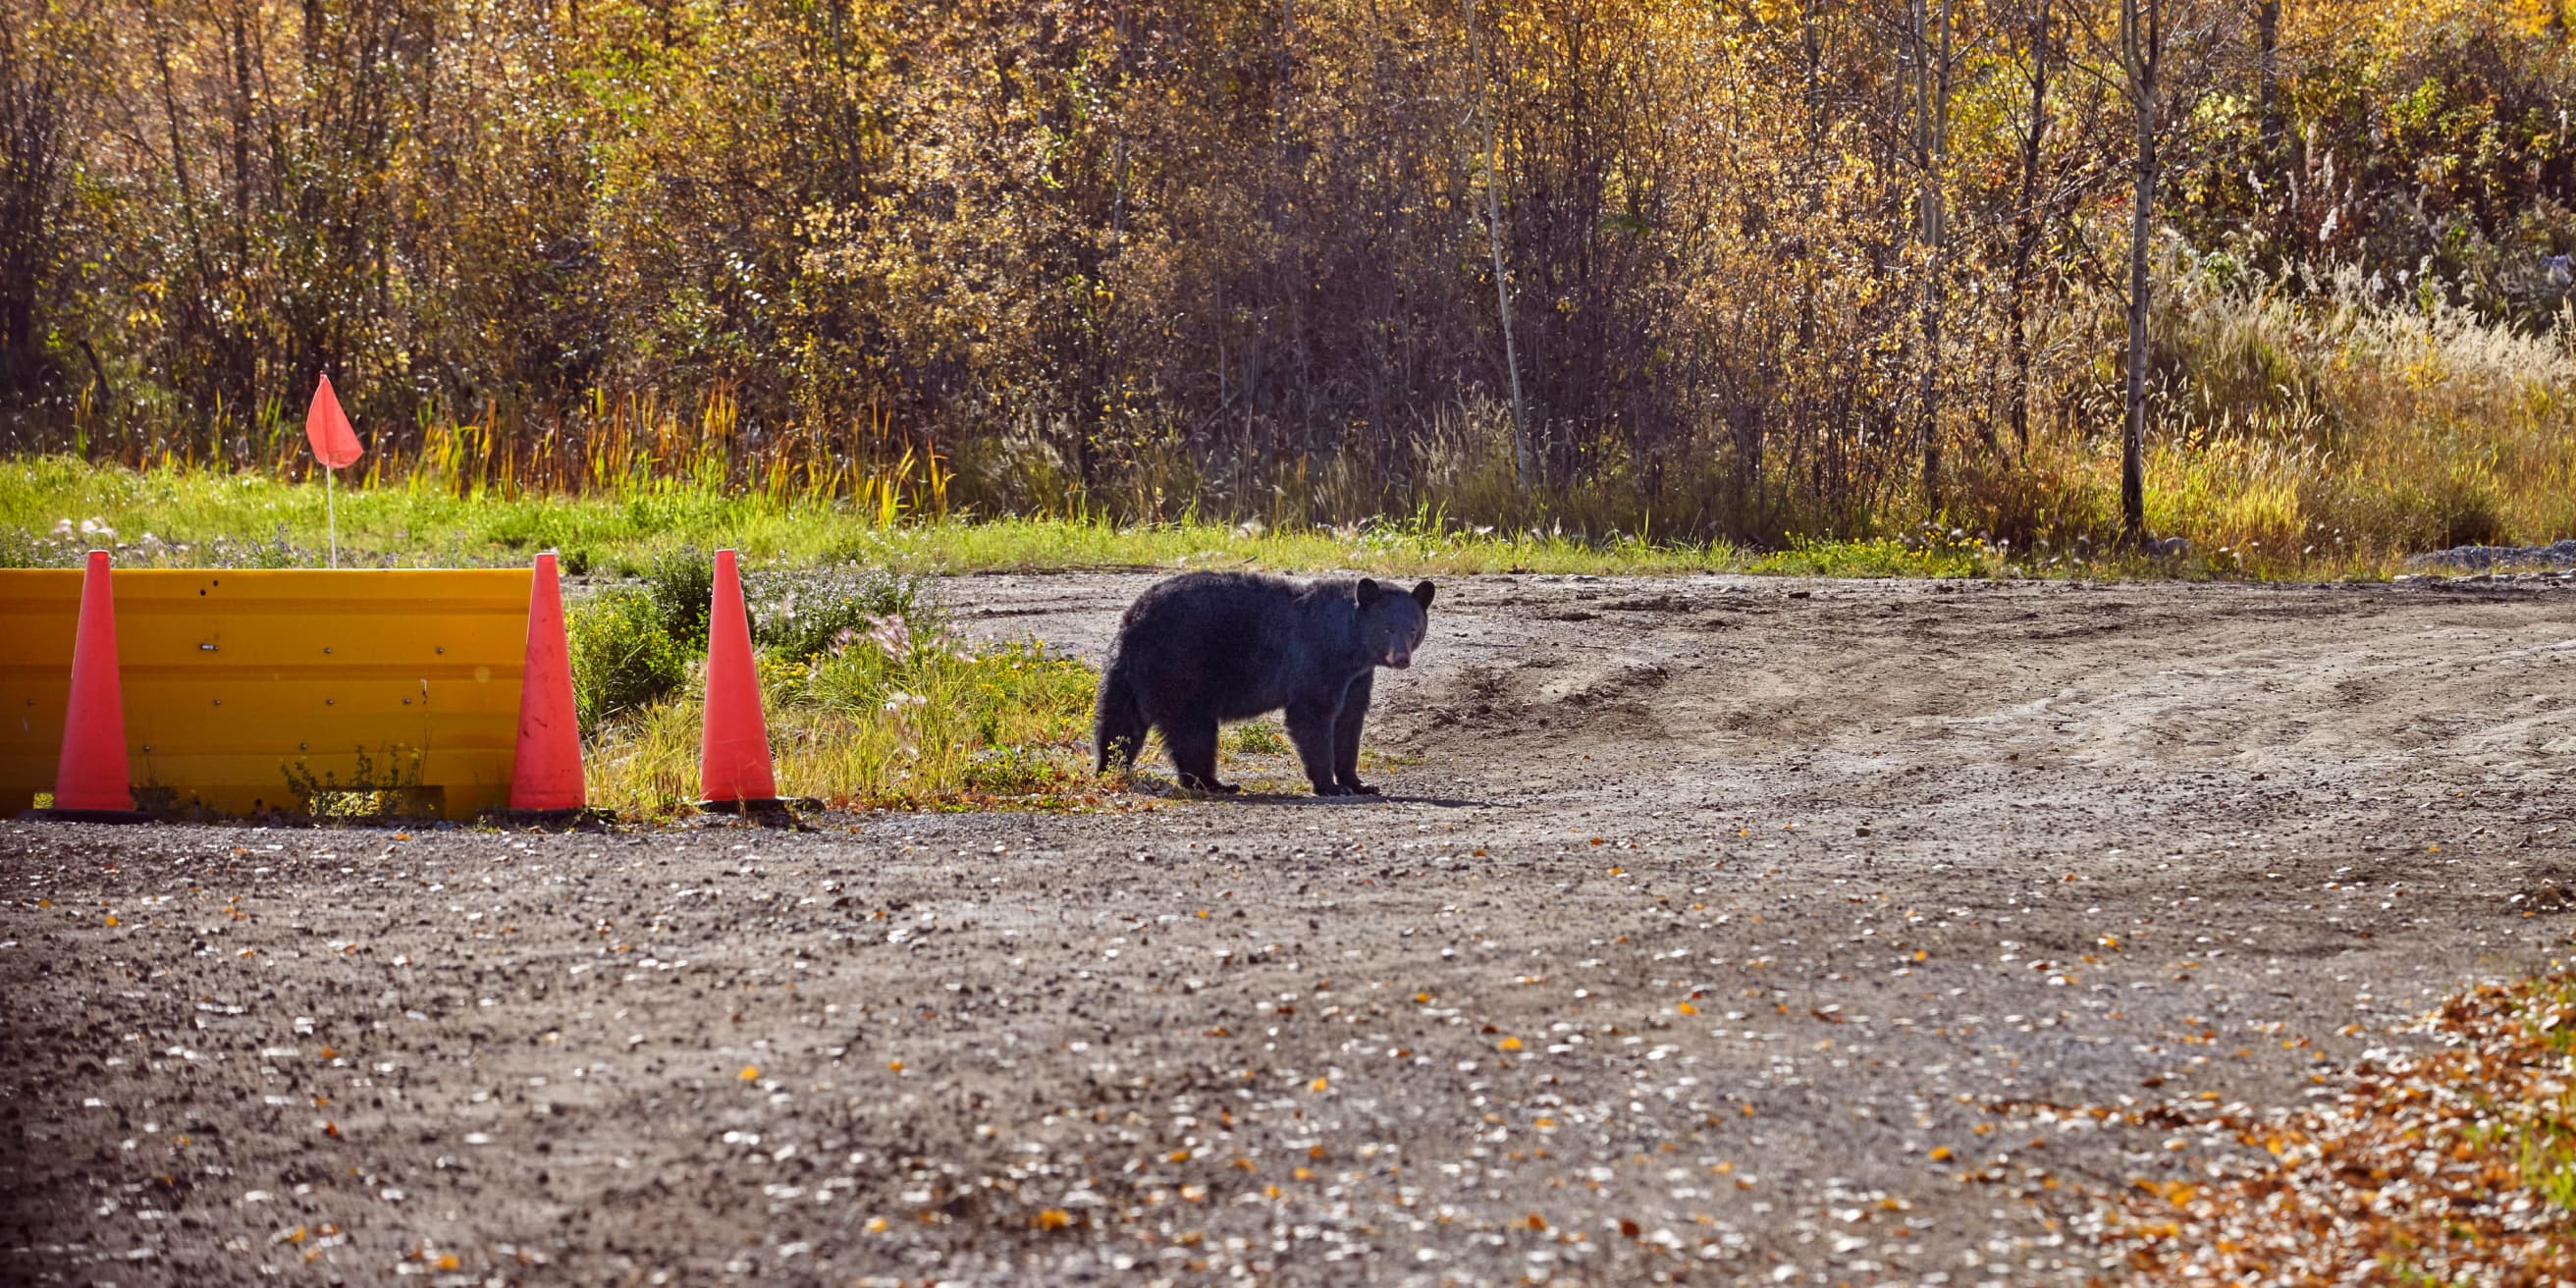 bear in the middle of a working site with orange cones around him